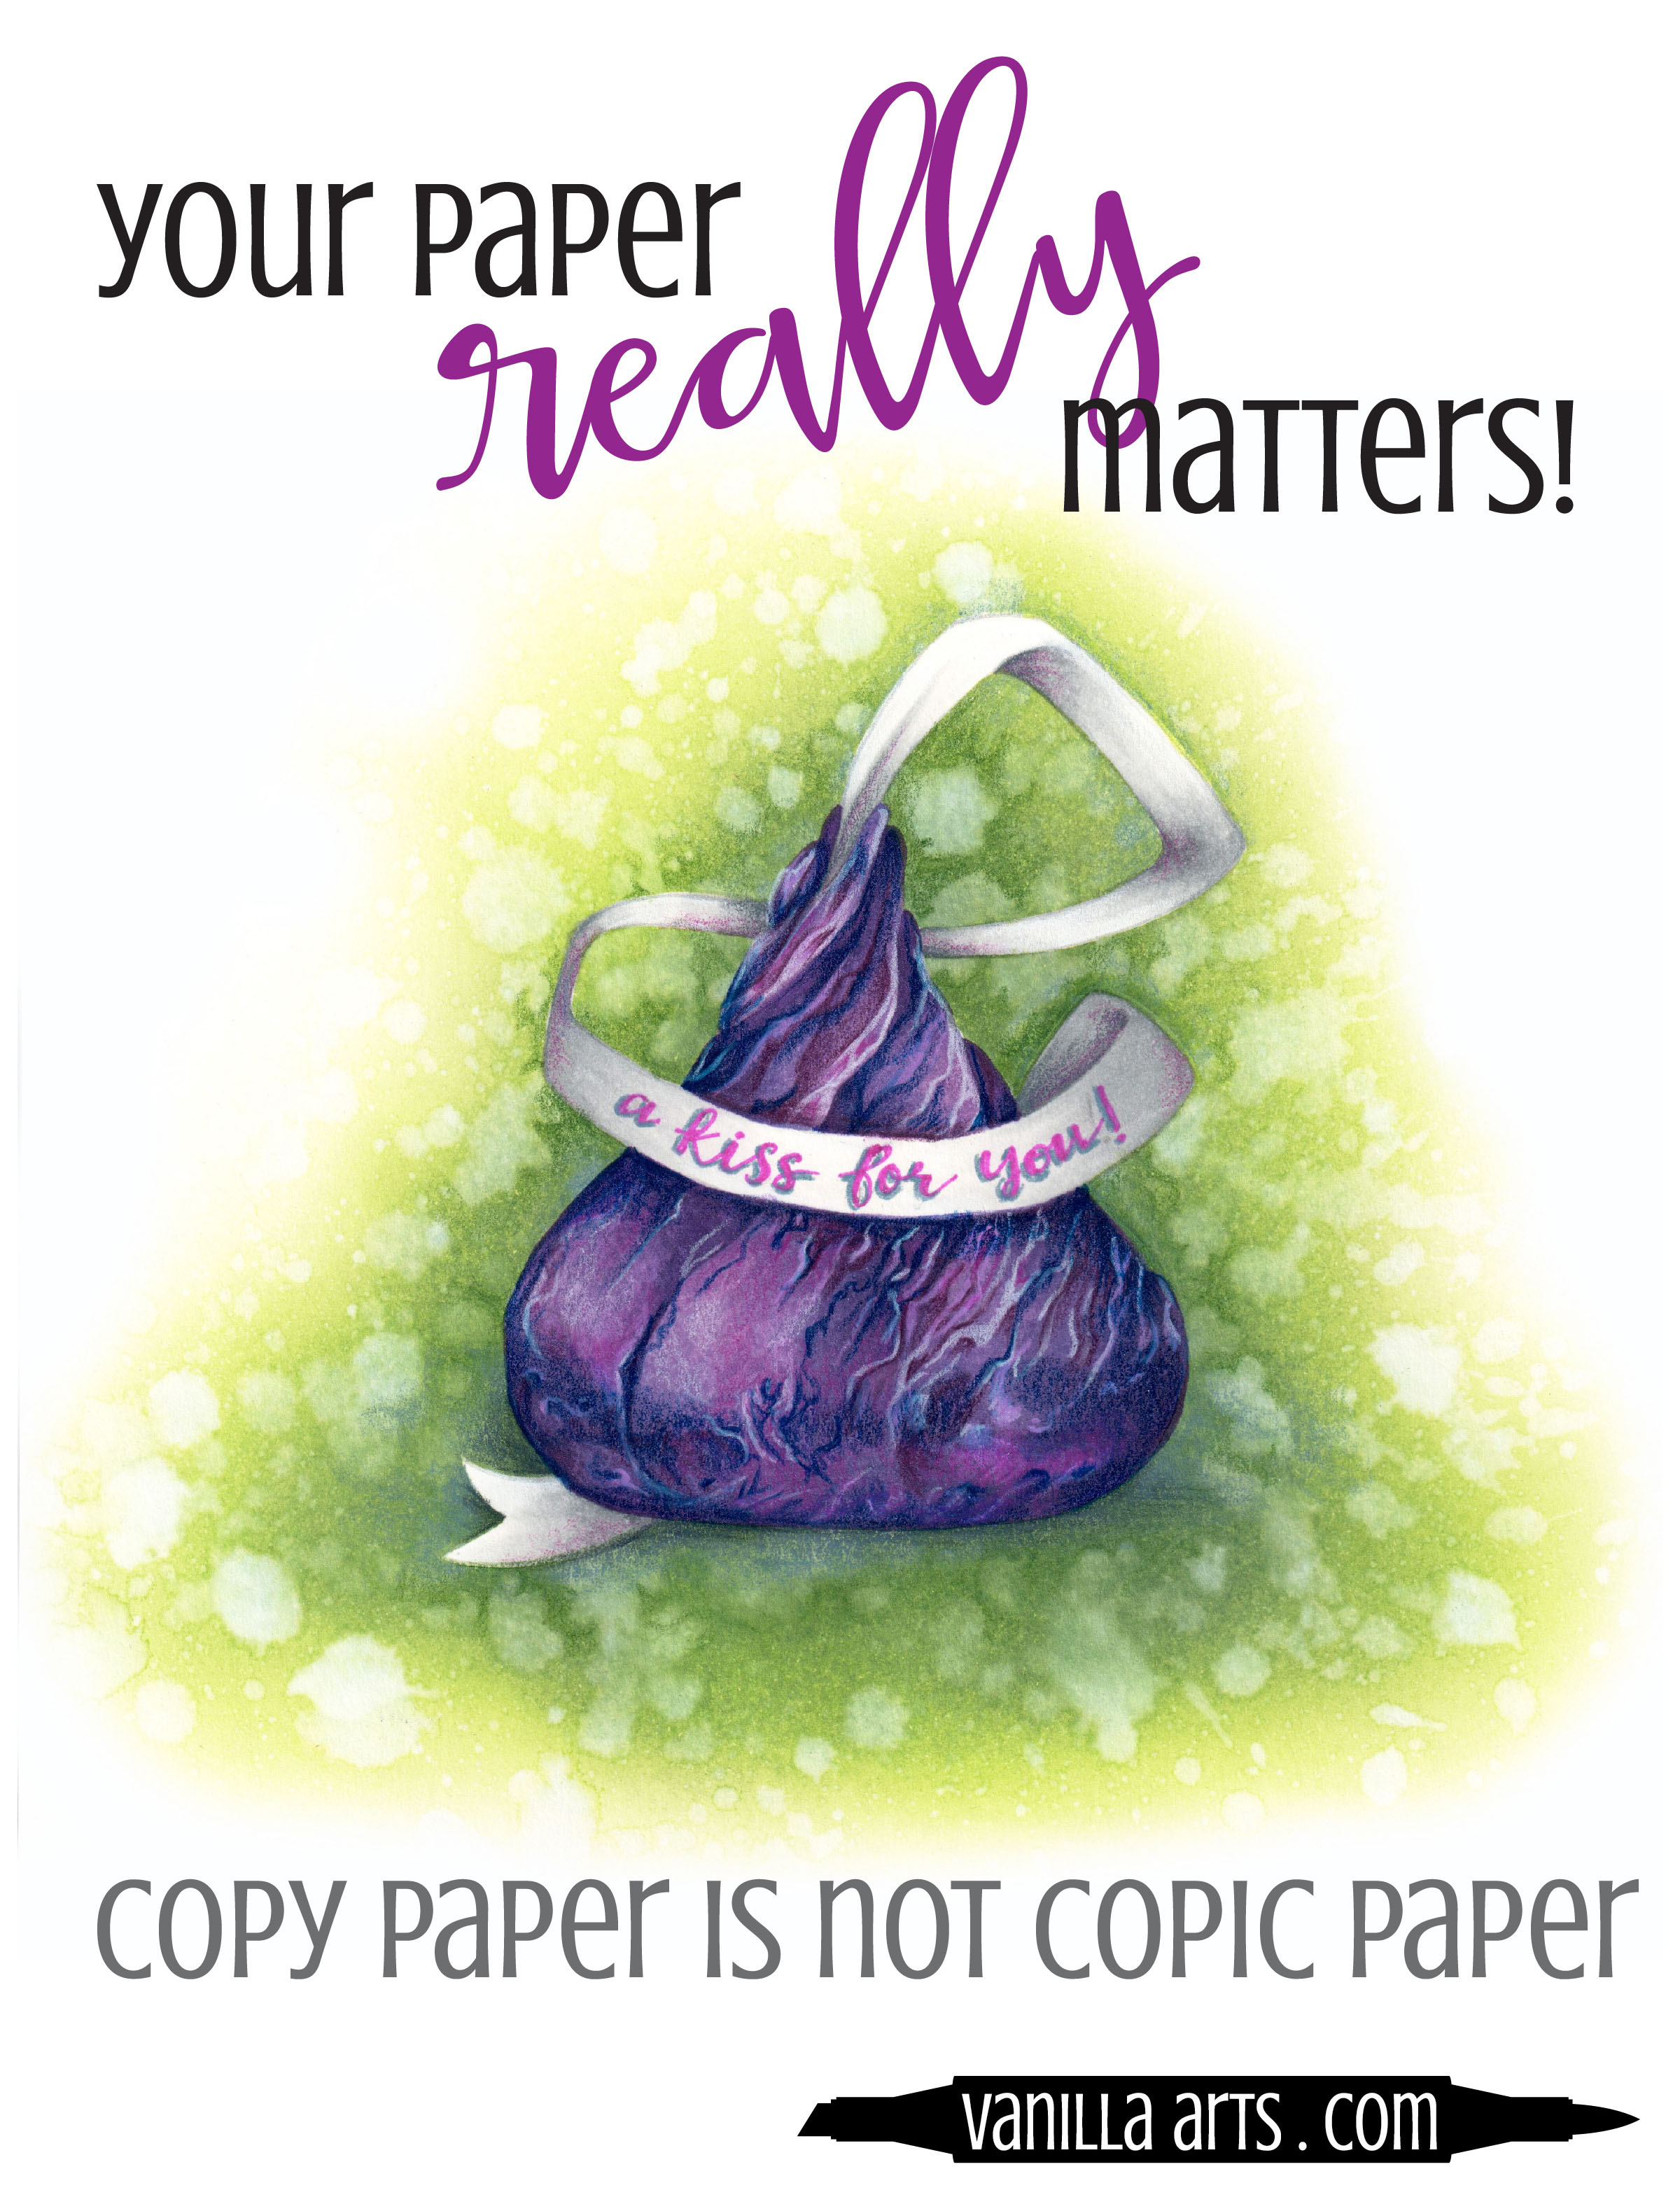 Simple steps you can take to immediately improve your Copic Marker blending- Copy paper is not Copic paper. Good blends are more than skill, you also need the right paper! | VanillaArts.com